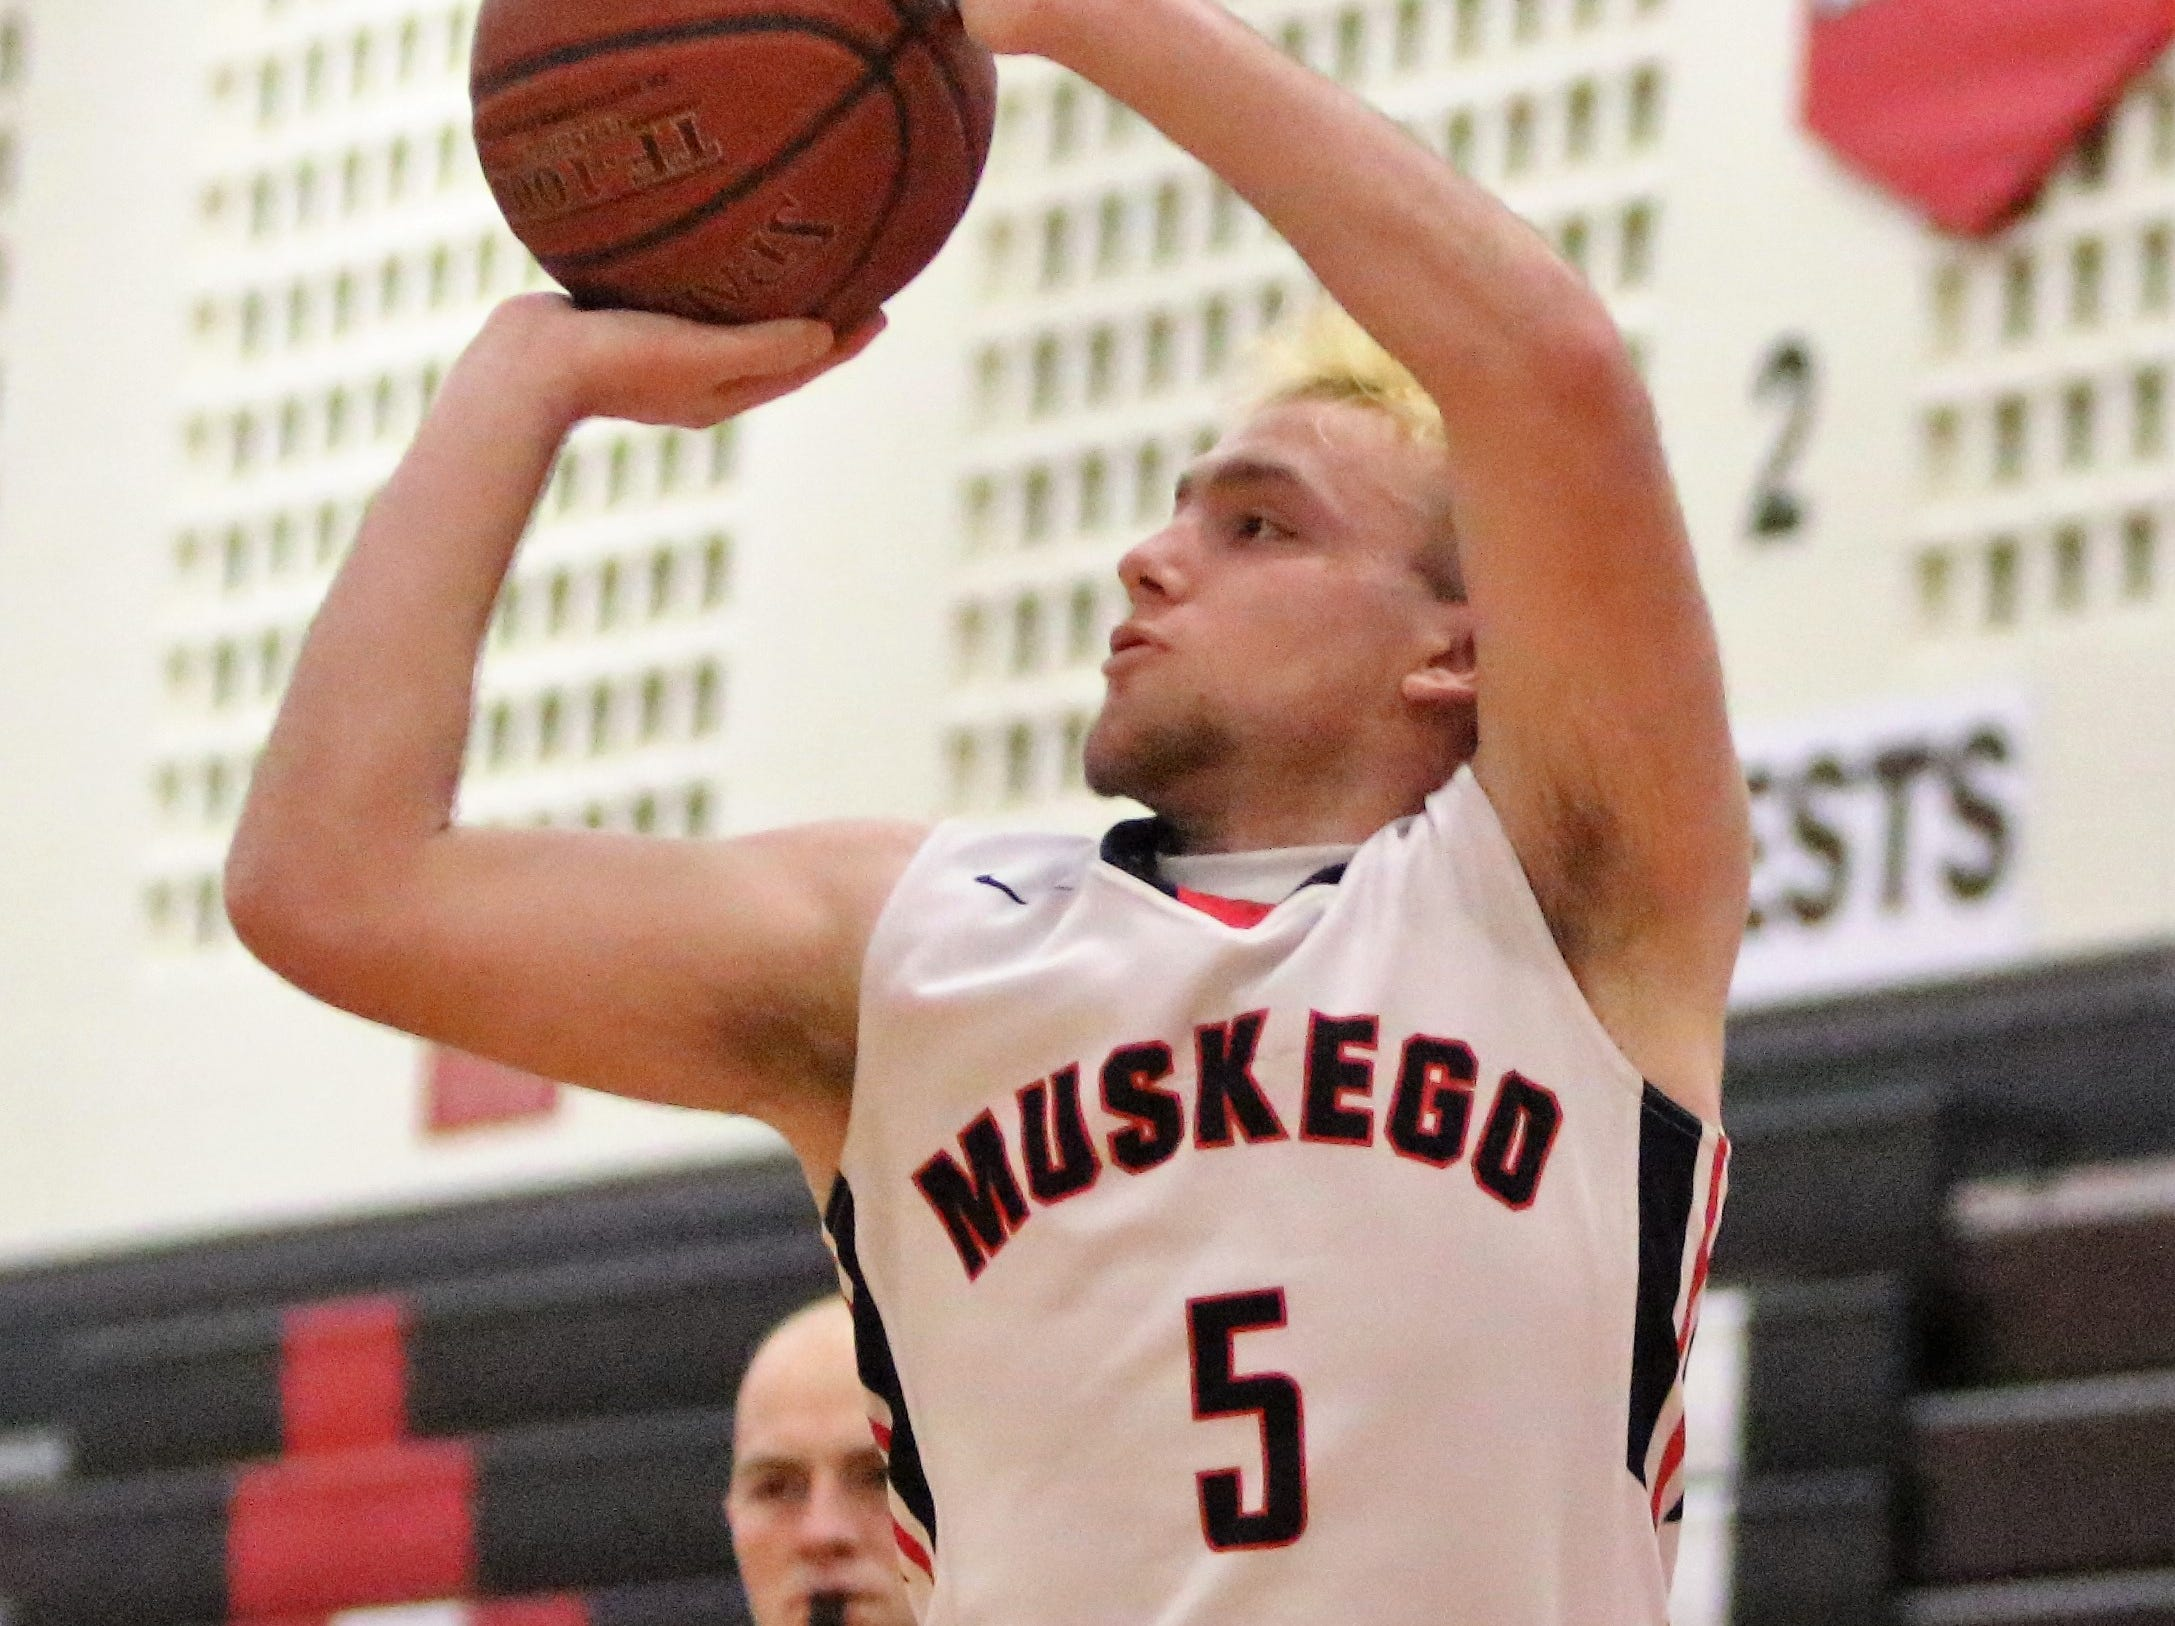 Muskego guard Wes Kwapick shoots a three-pointer against Muskego on Feb. 11, 2019.